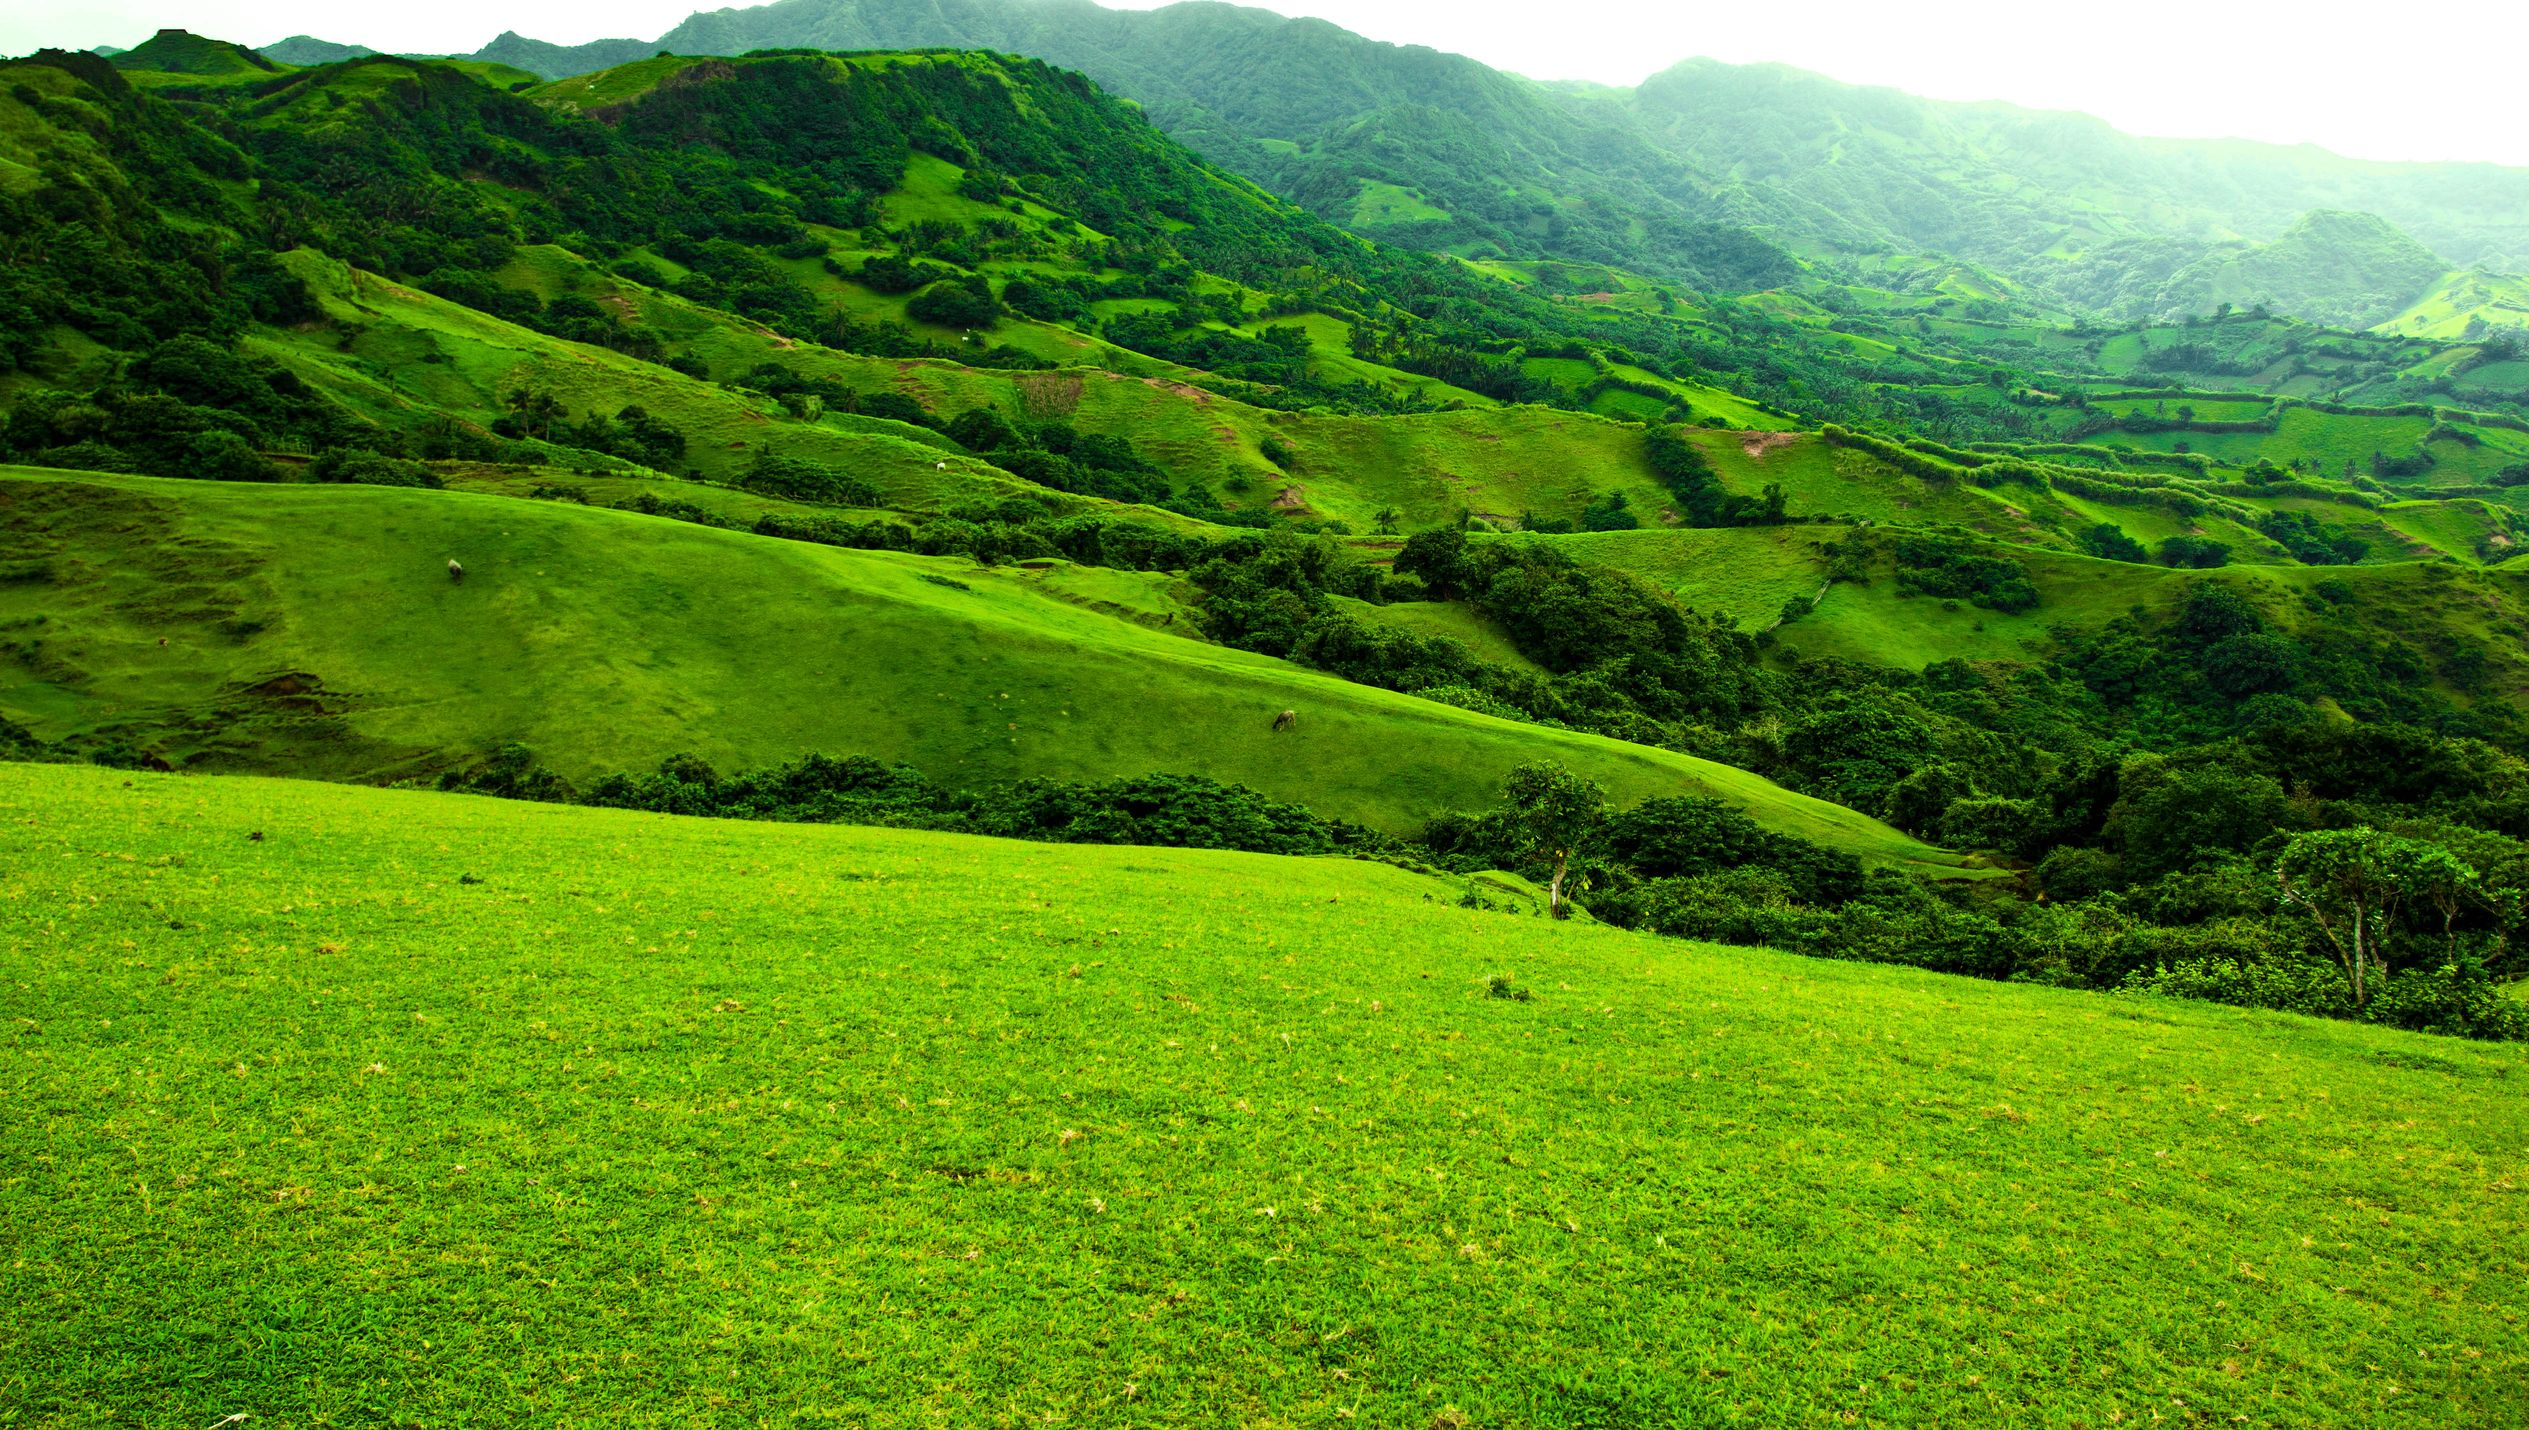 Green rolling hills in Batanes, Philippines